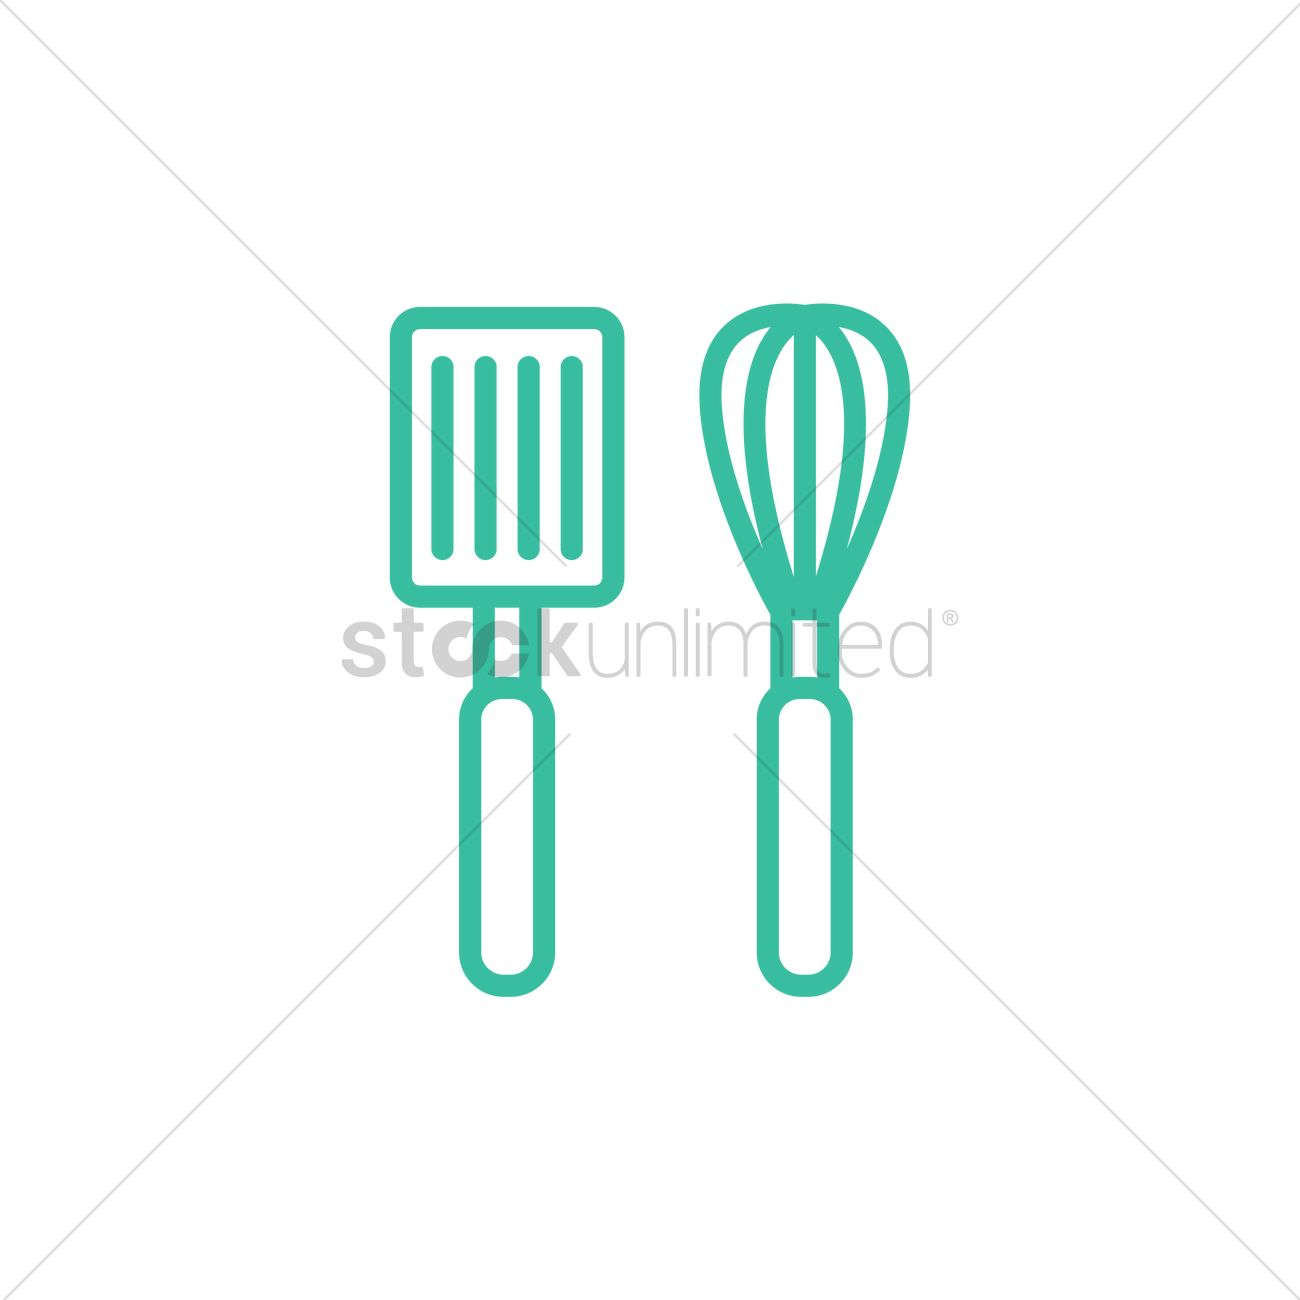 Cooking utensils Vector Image - 2023115 | StockUnlimited